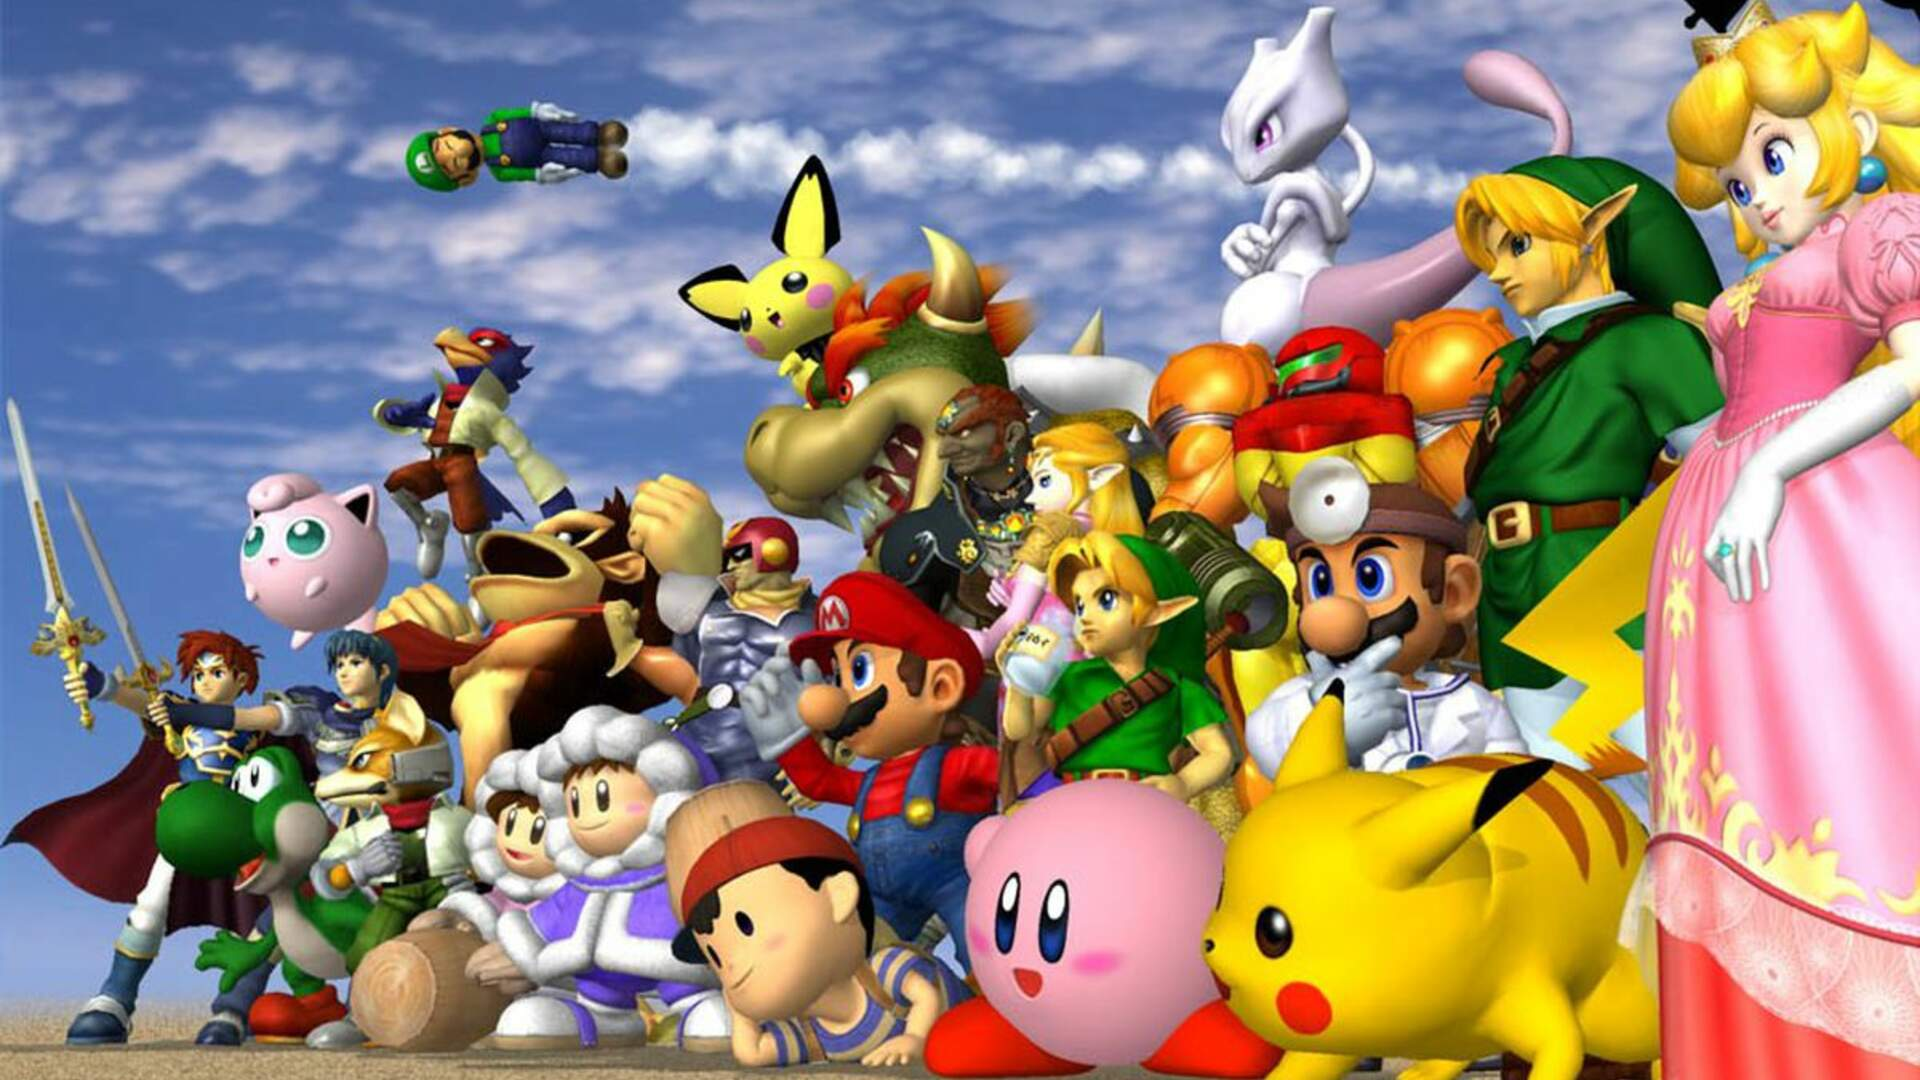 Evo's 2019 Lineup Marks the End of Super Smash Bros. Melee's Phenomenal Run at Evo